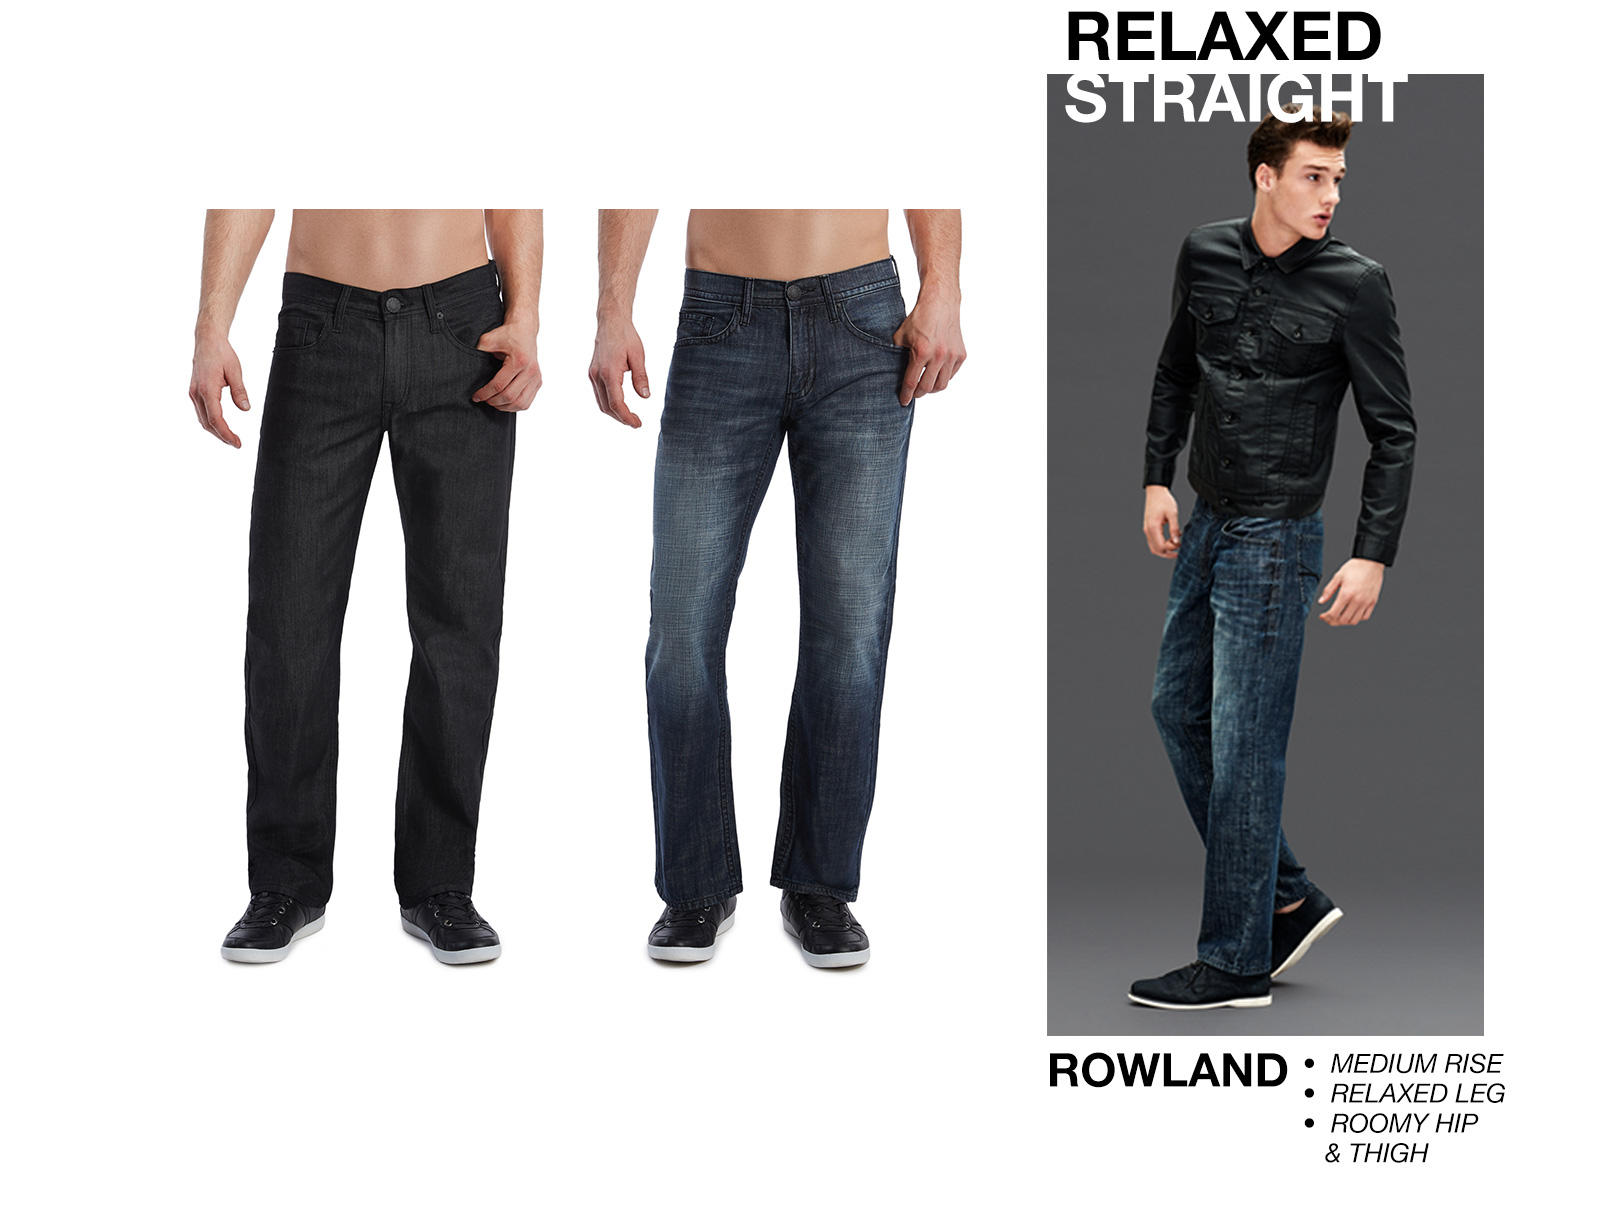 Relaxed Straight Denim